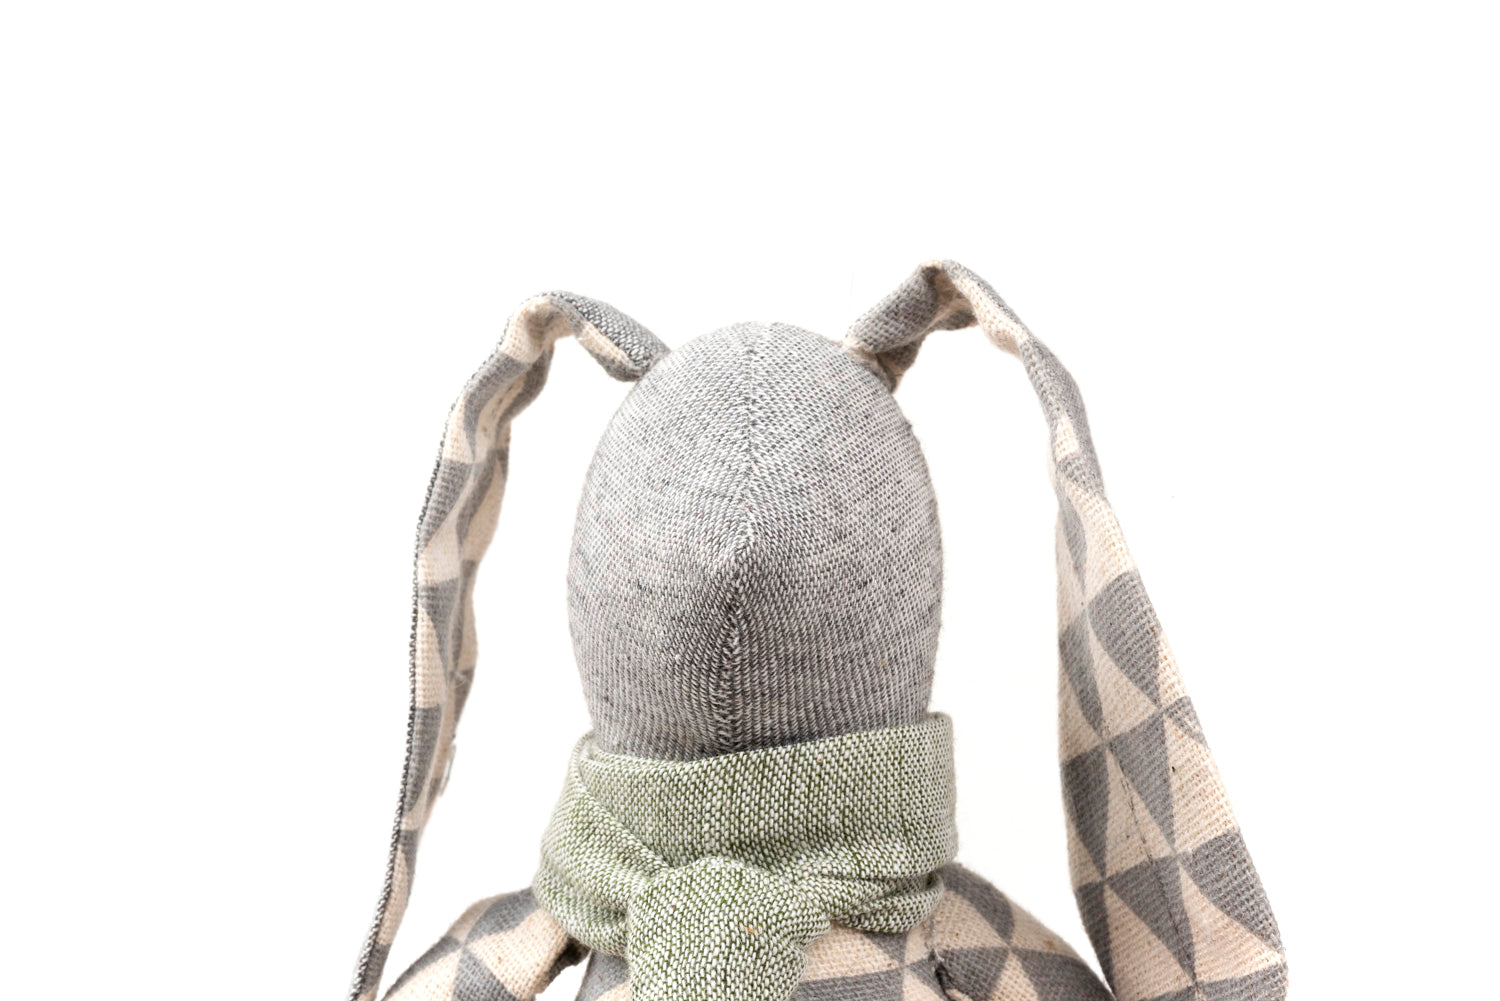 Rabbit handmade doll Stuffed toy Plush rabbit Stuffed animal Cloth doll Linen doll Decorative toy Boy gift Easter basket gift Gender neutral